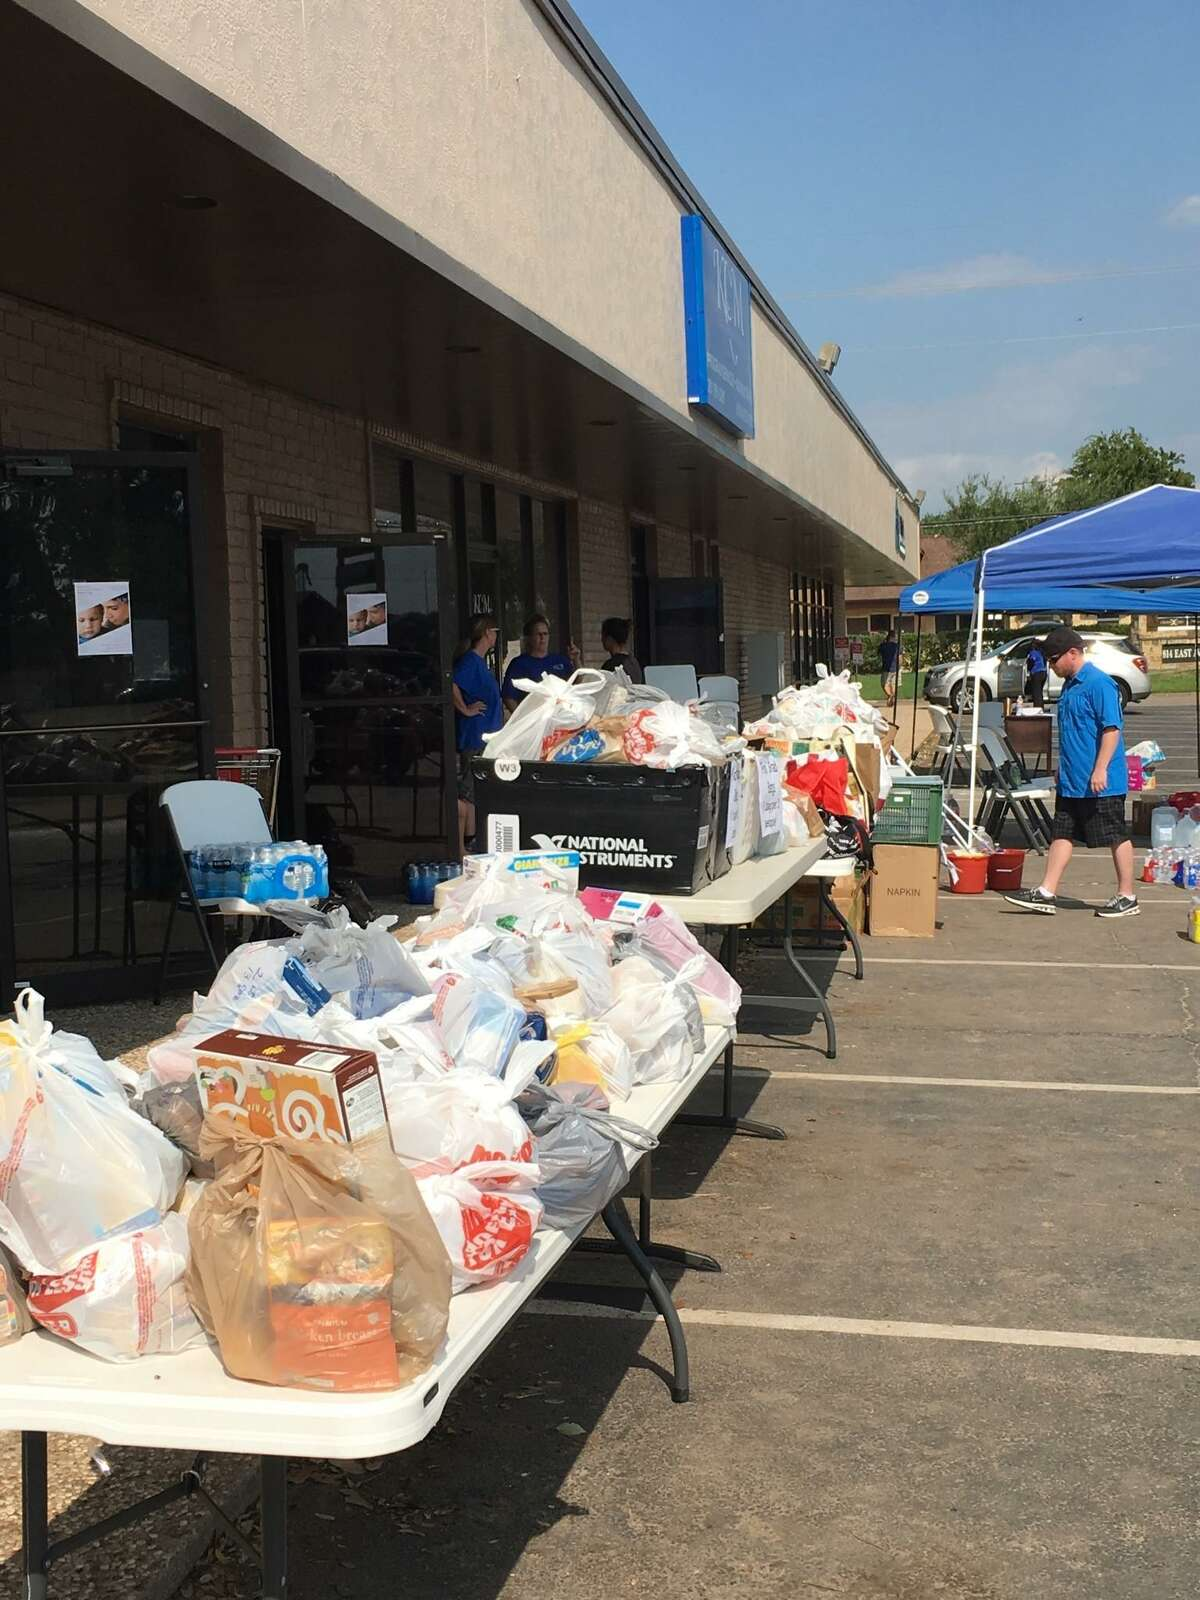 After Hurricane Harvey, Katy Christian Ministries set up tables to serve people. KCM began assisting those affected on Aug. 31, 2017, by providing them with non-perishable items such as food, water, cleaning supplies and personal care, said Holly Havlick, KCM food pantry director.